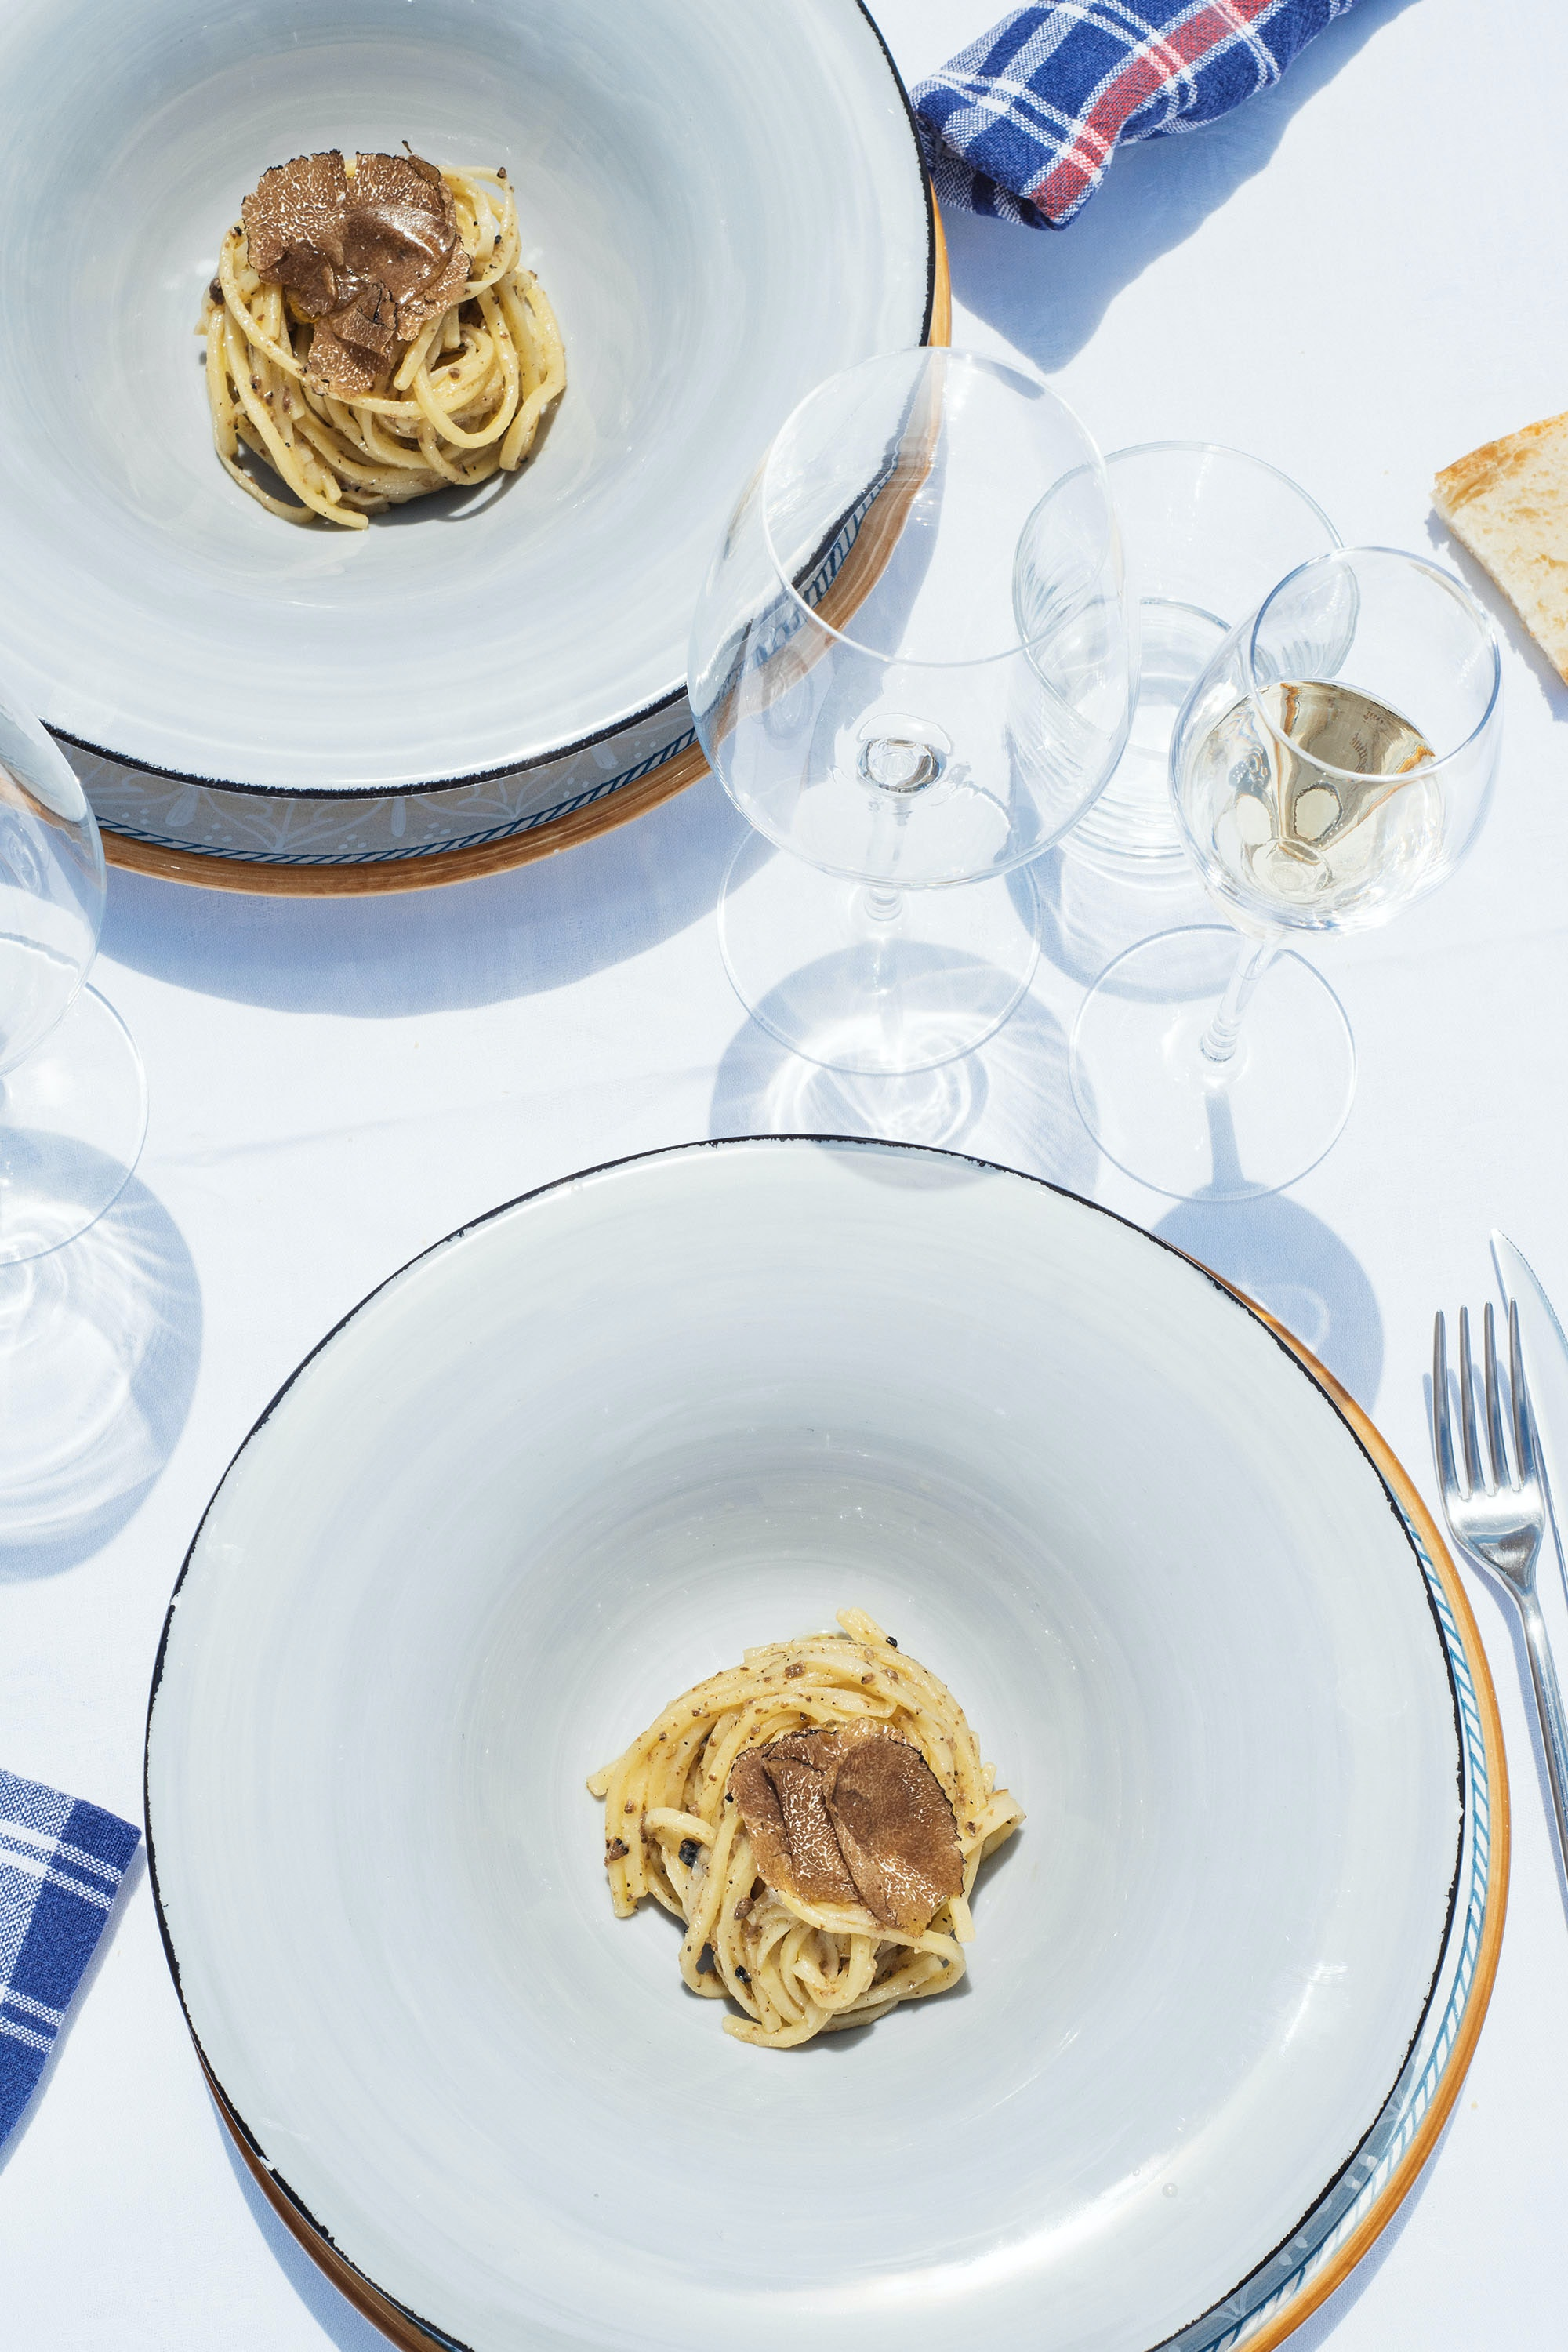 At the Tenuta San Pietro a Pettine truffle plantation, guests can try strangozzi pasta with black truffles, a regional dish.